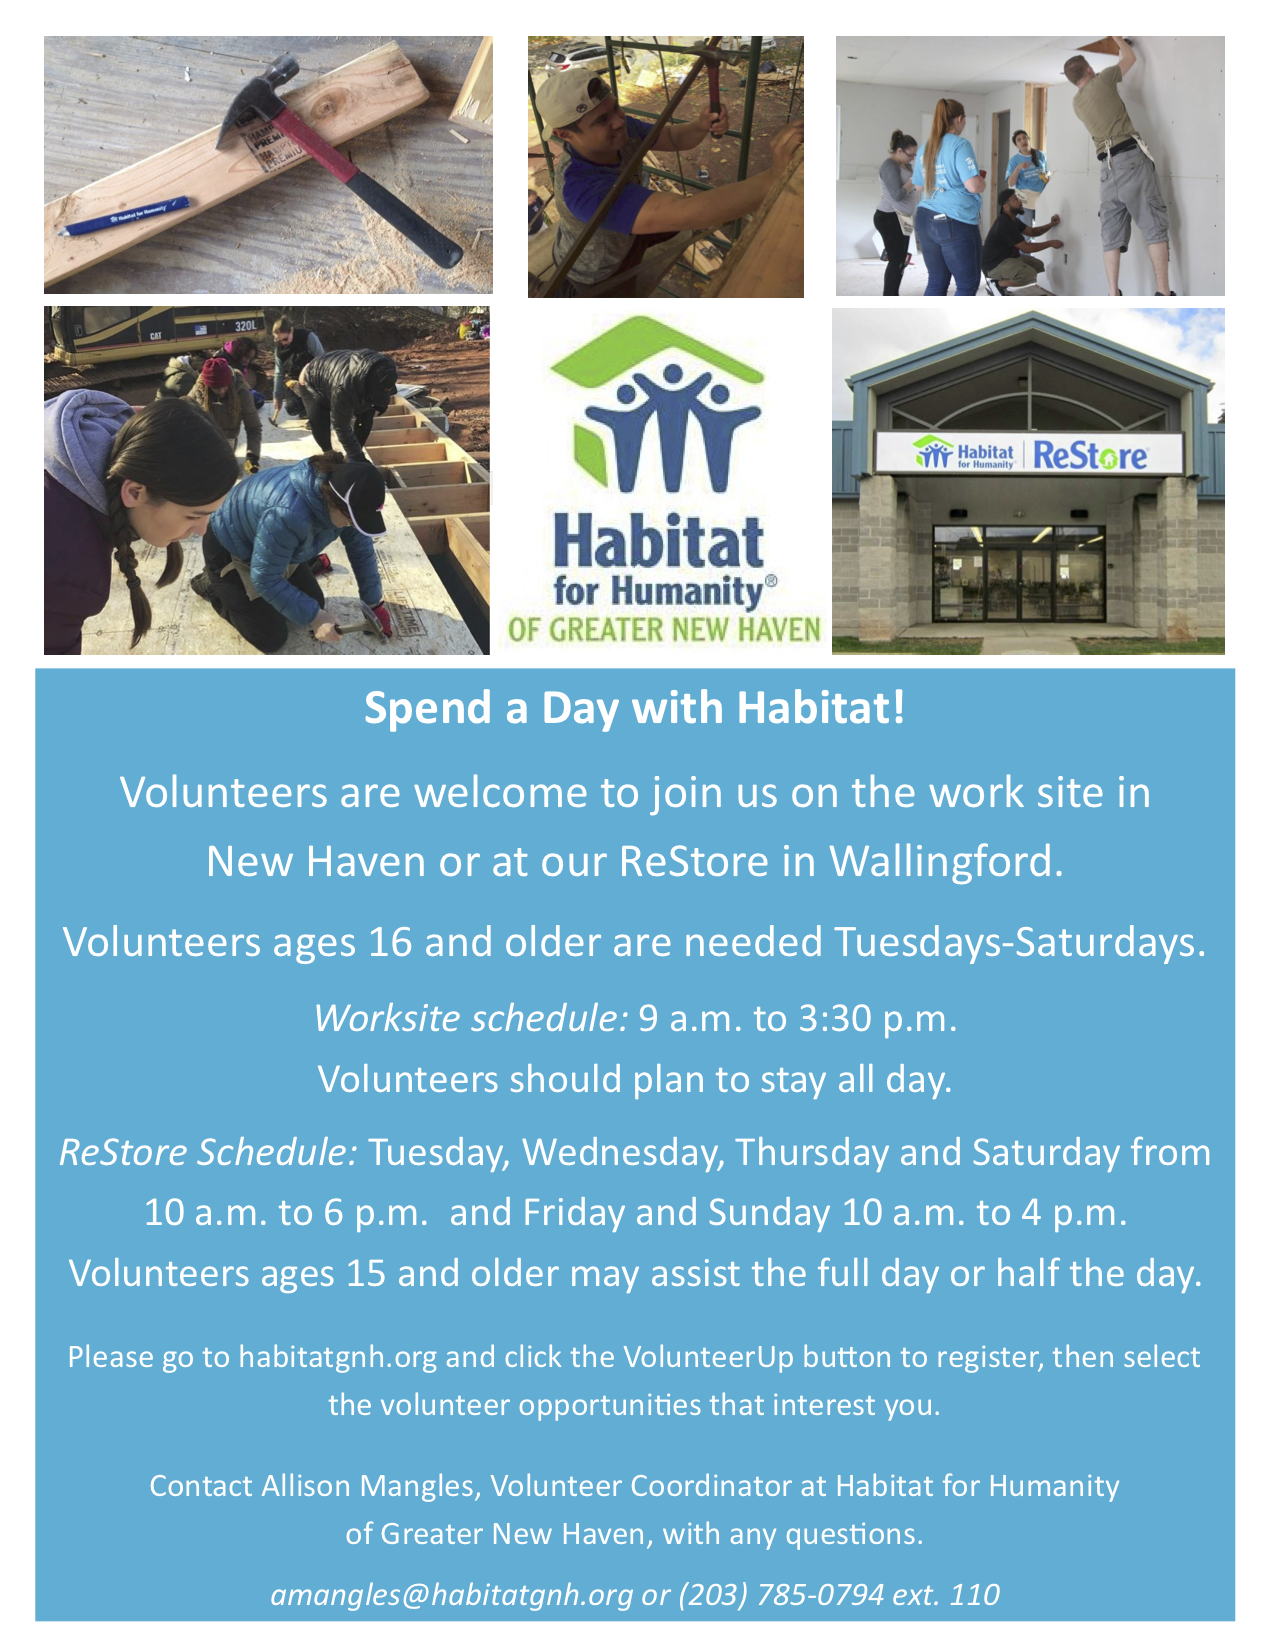 Habitat for Humanity Volunteer Service